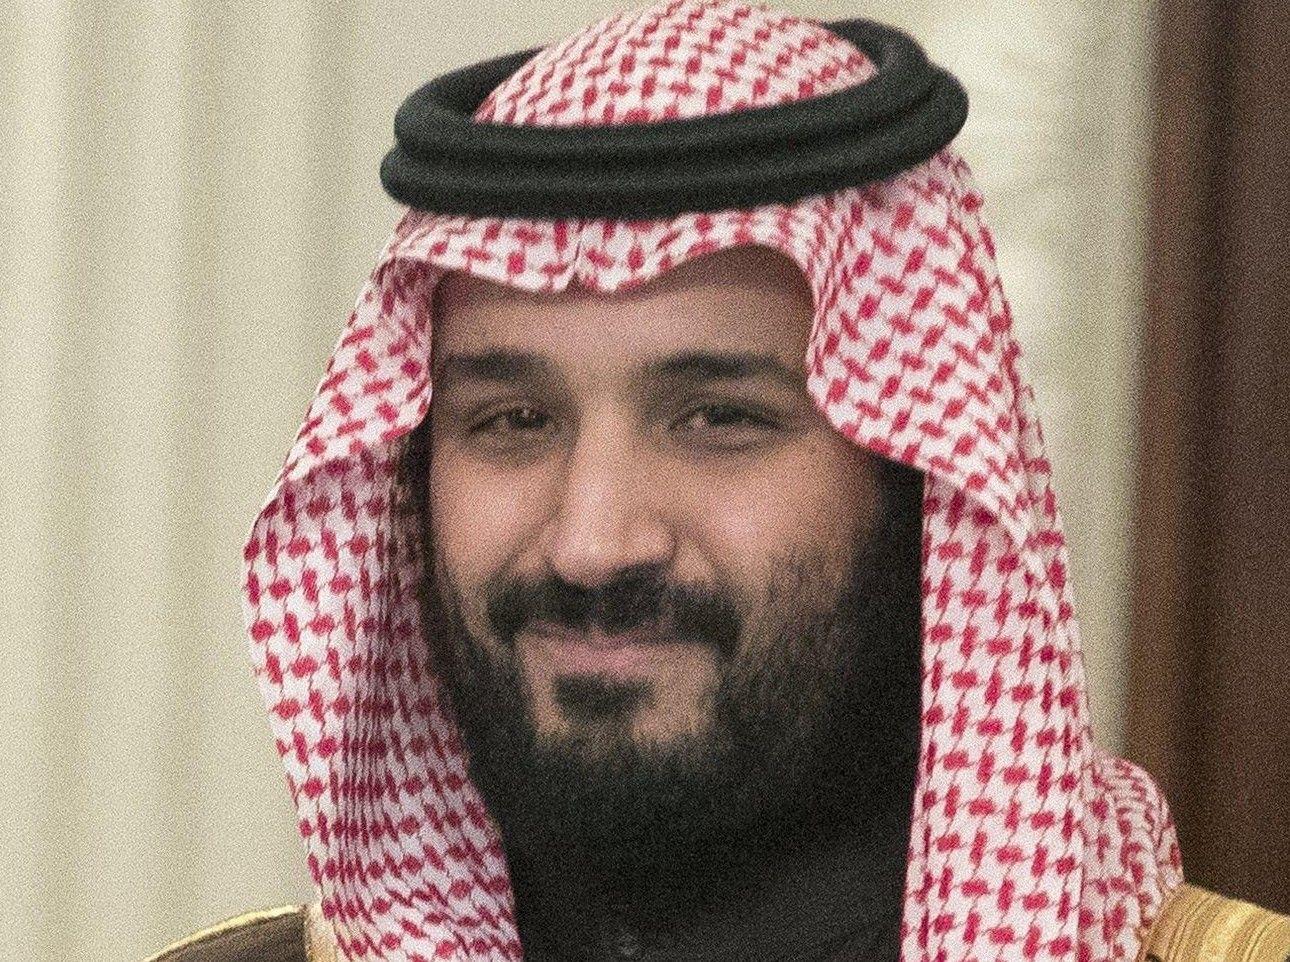 Saudi Arabian high ranking royals give their support to new Crown Prince